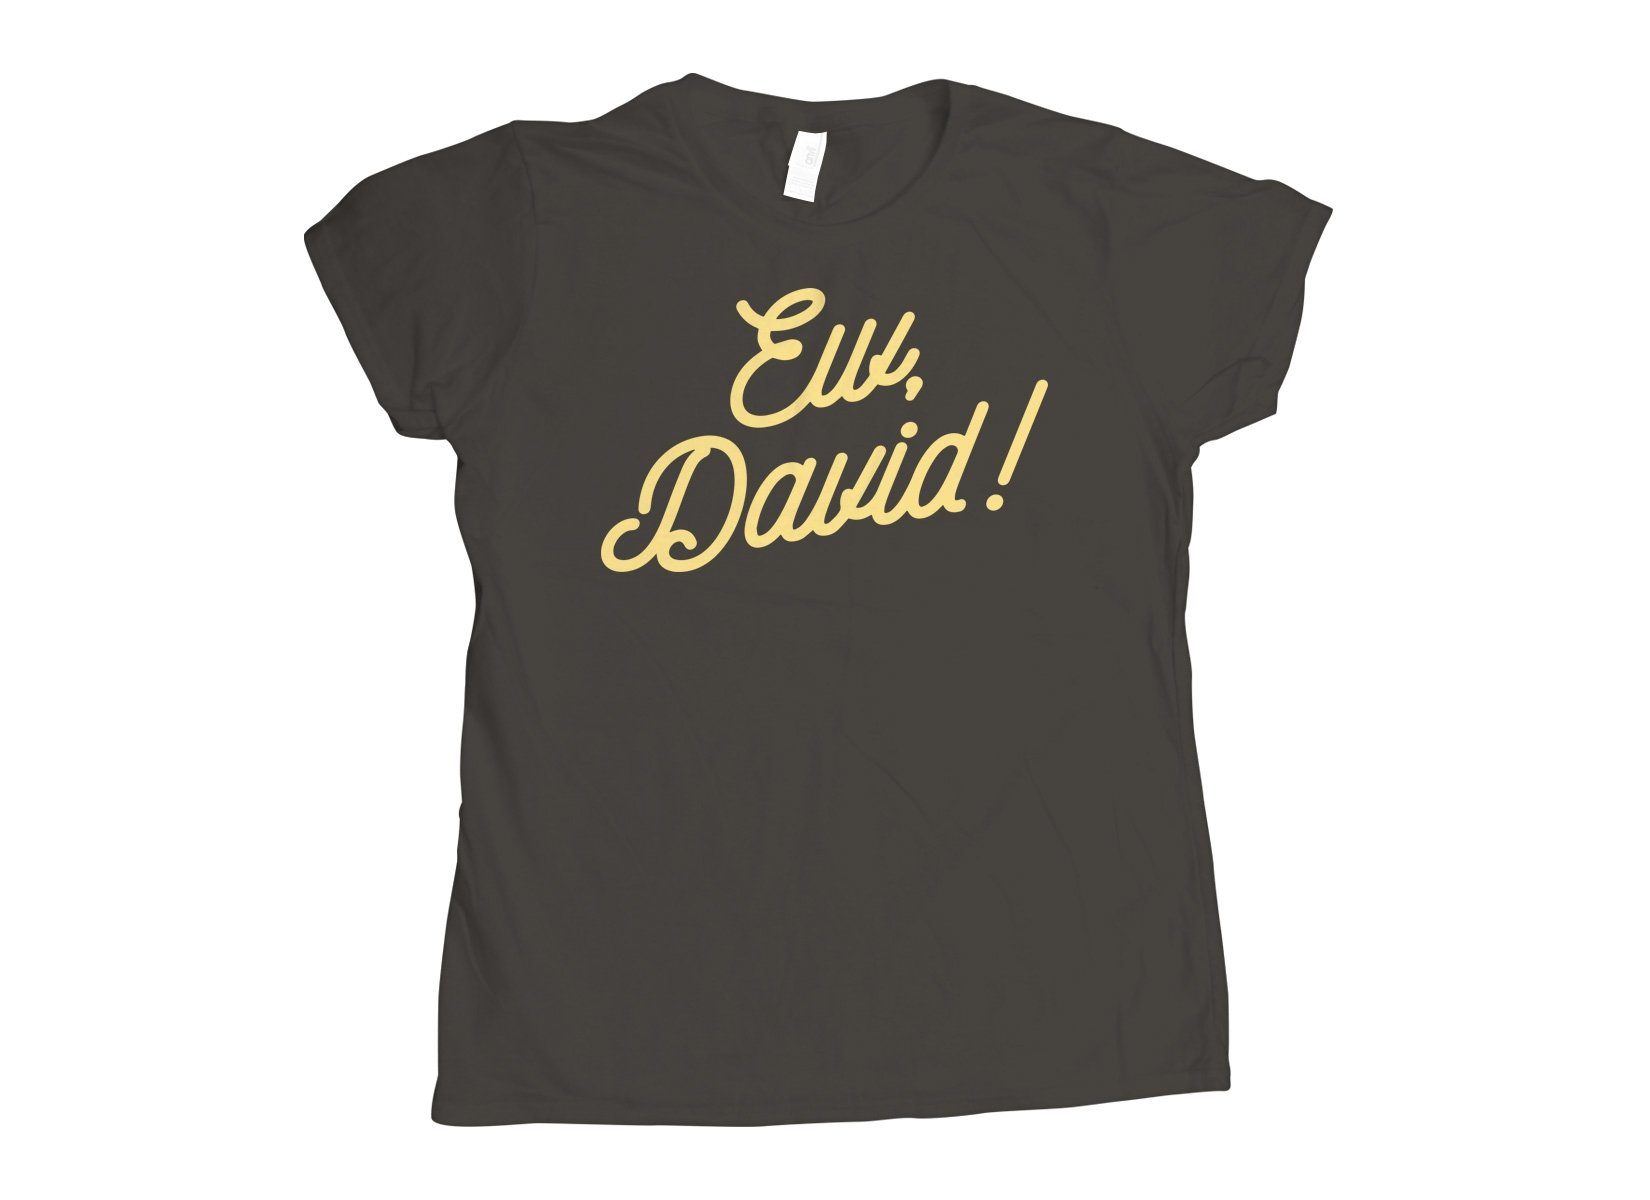 Ew, David! on Womens T-Shirt